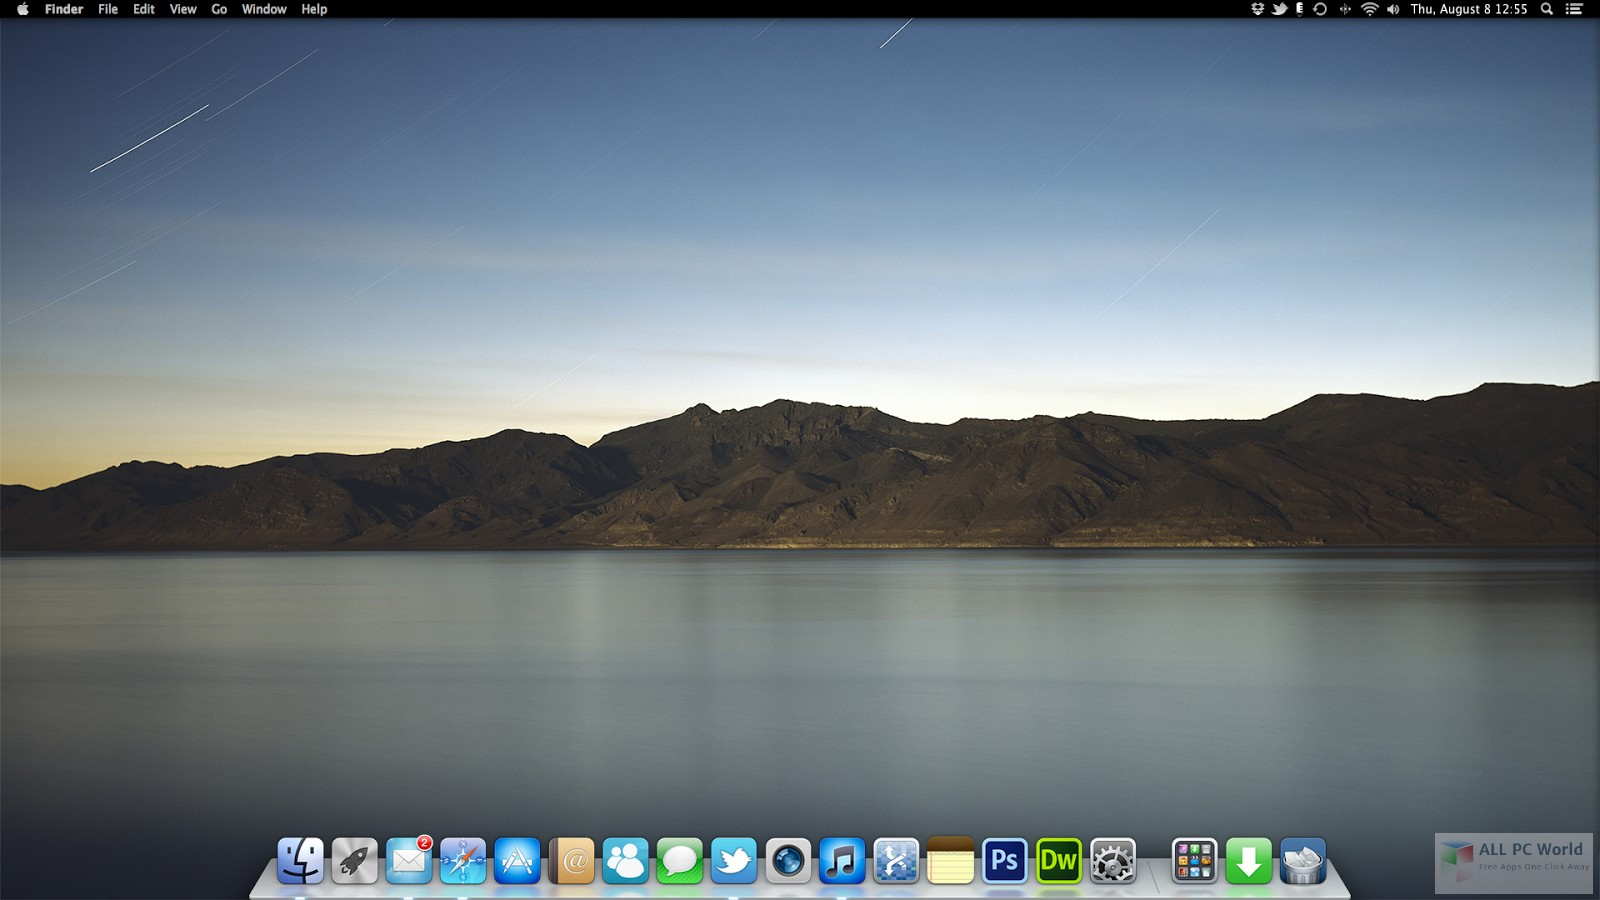 Download Mac OS X Mountain Lion 10.8.3 DMG Free